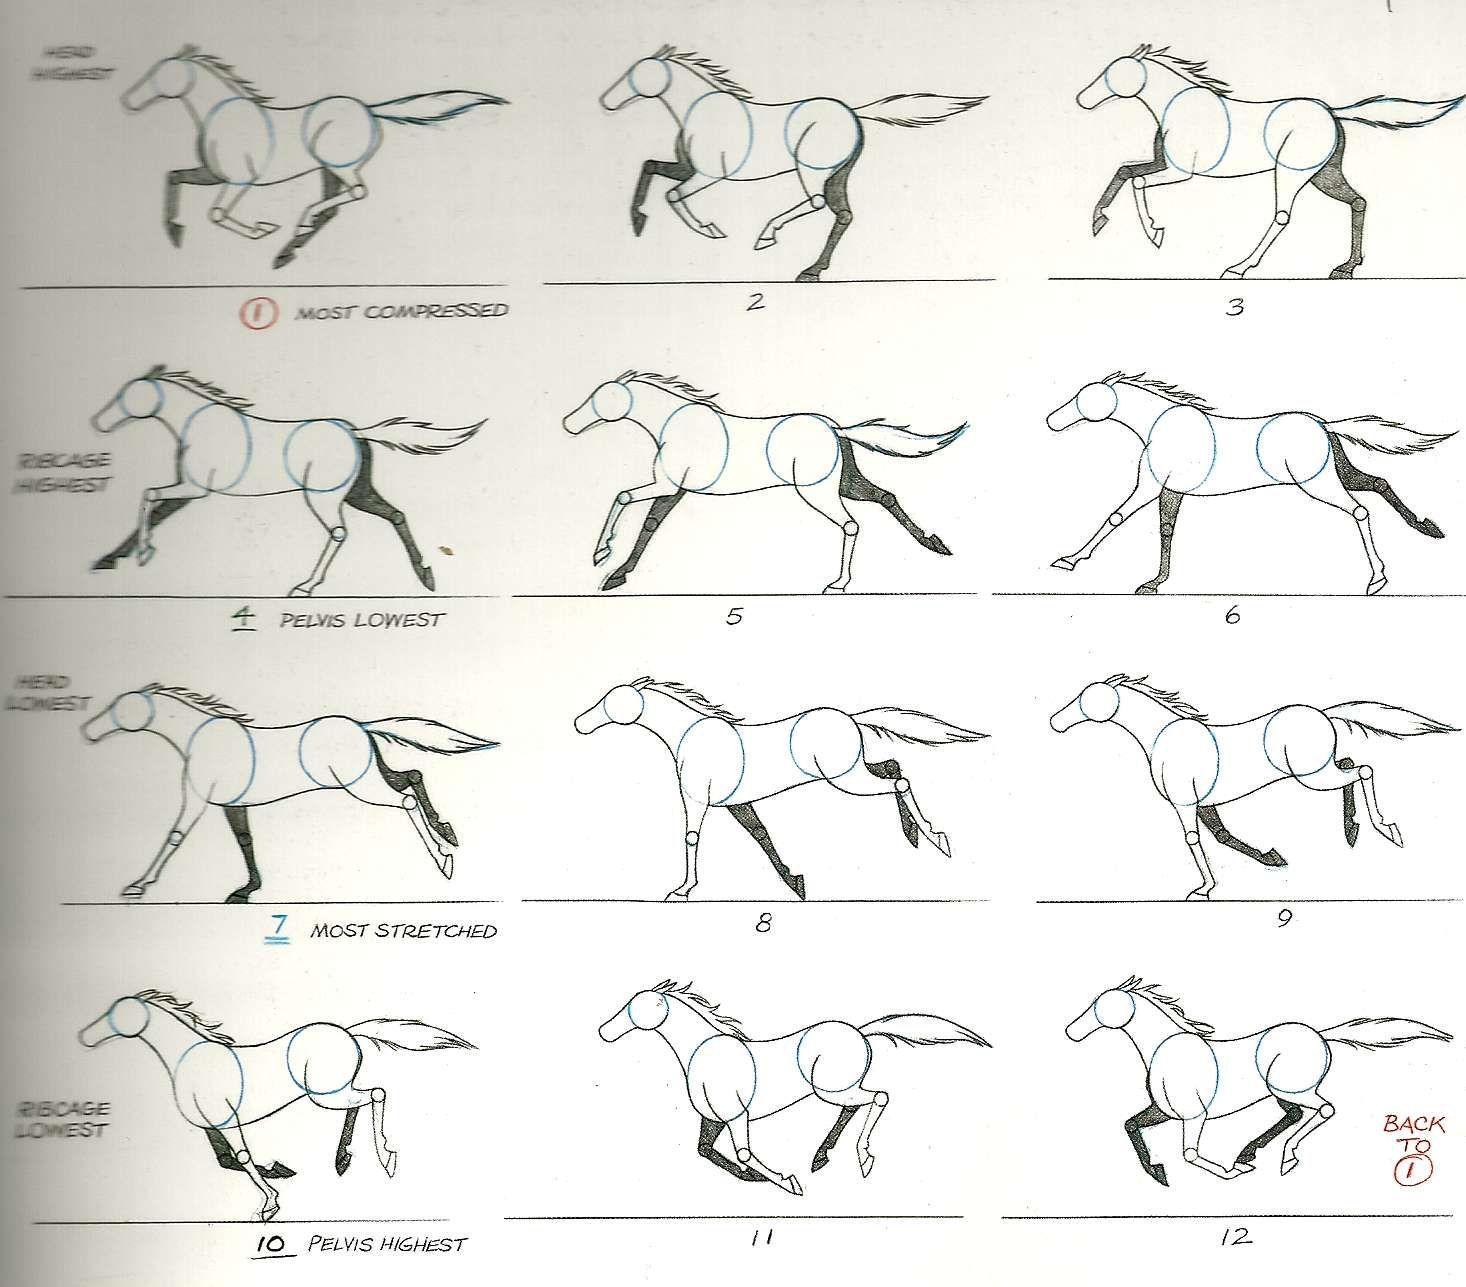 medium resolution of heres a work in progress of the horse run cycle i am currently working on heres the reference i am using its from the richard williams b